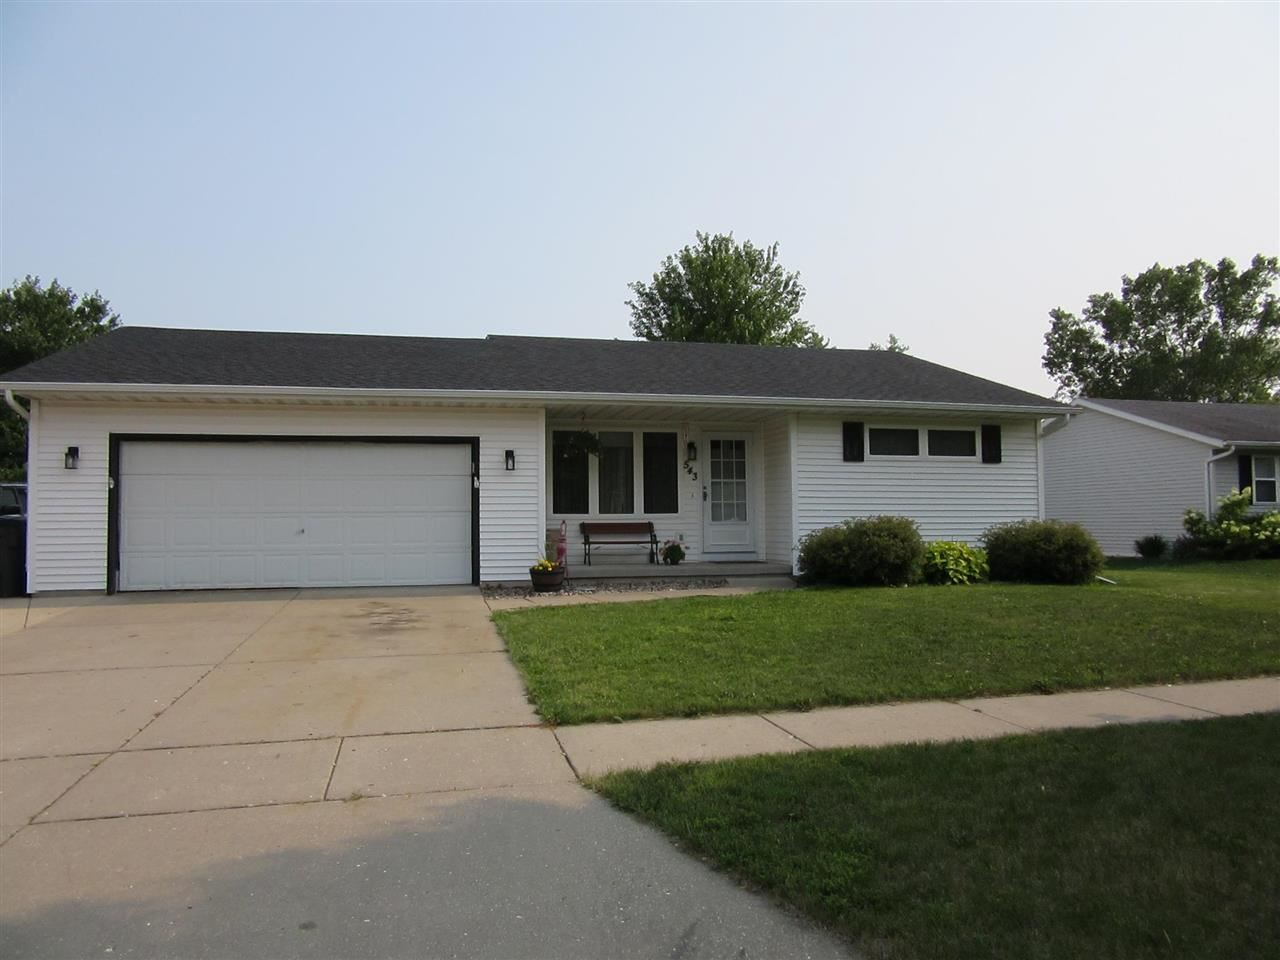 543 Countryside Dr, Evansville, WI 53536 - #: 1915201